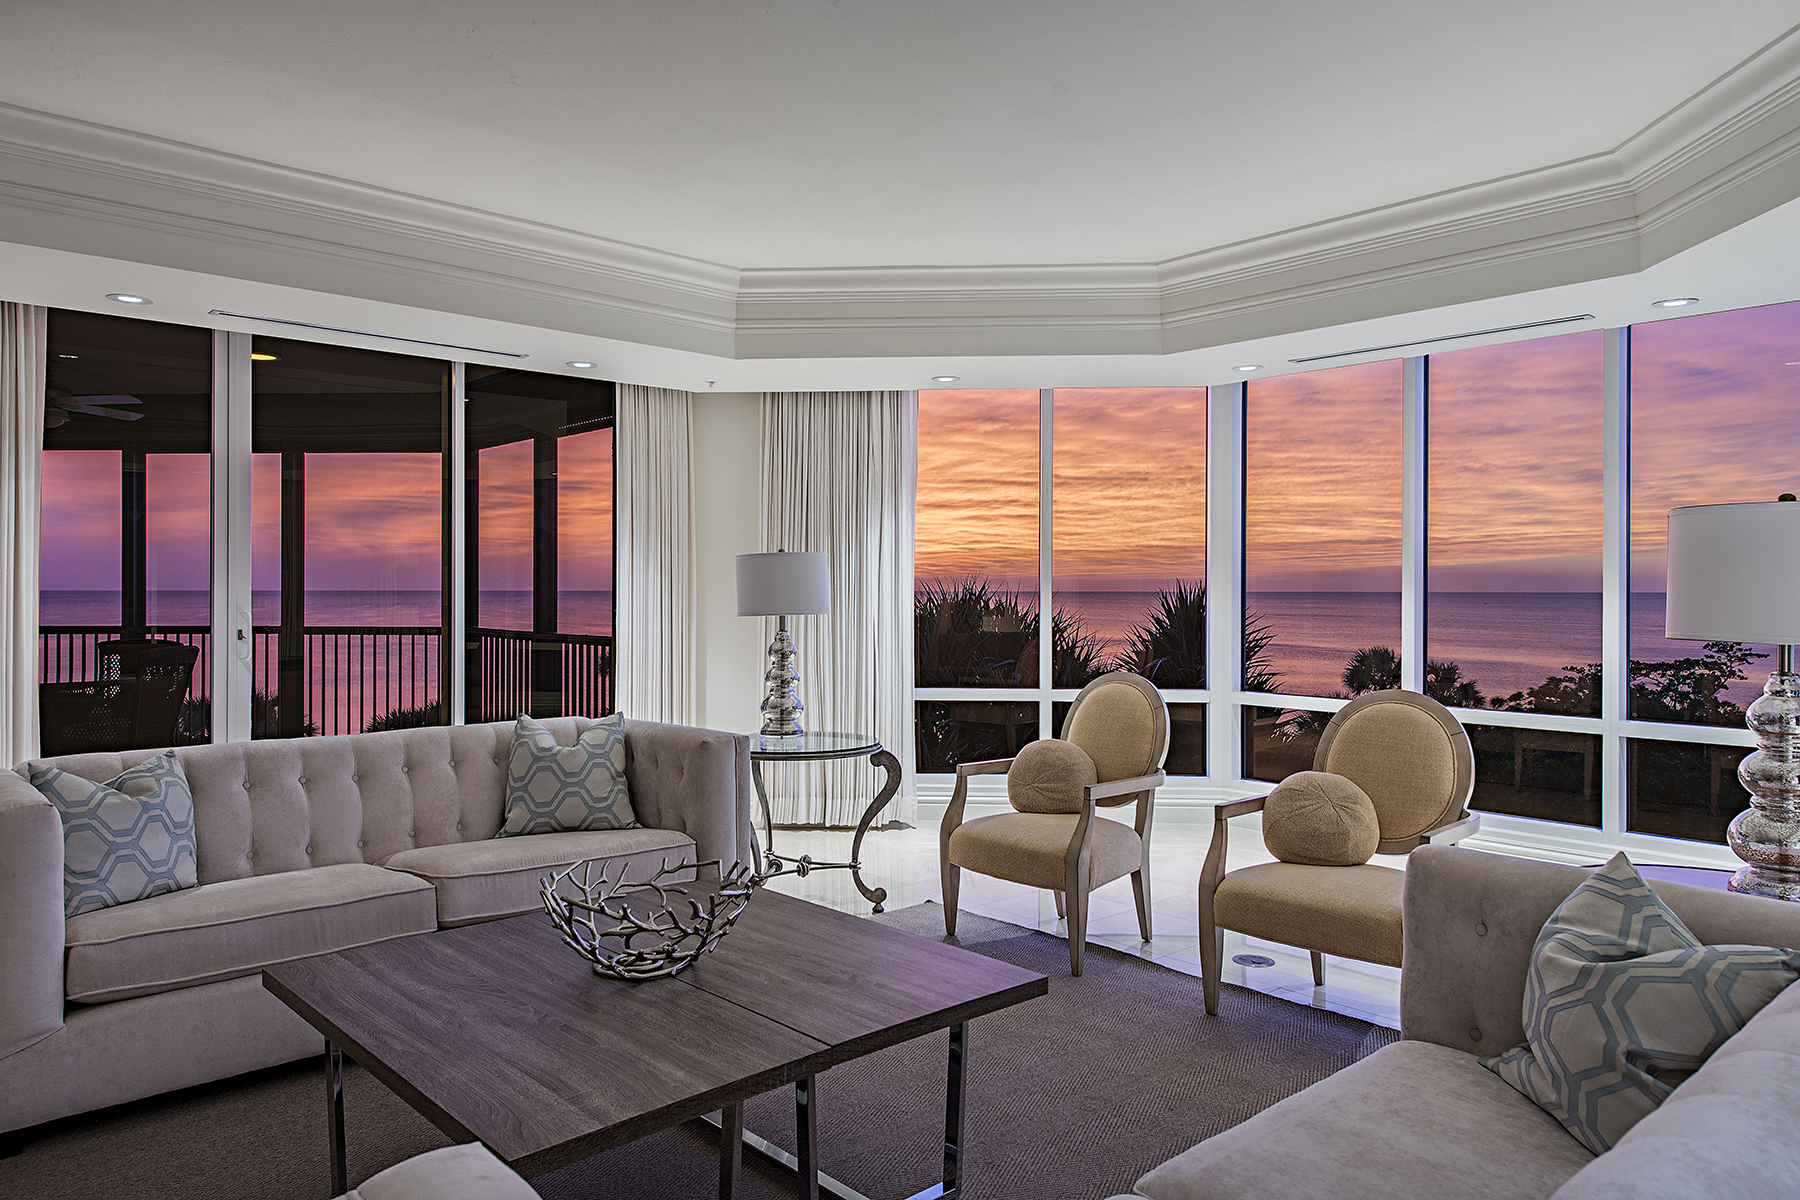 Condominium for Sale at PELICAN BAY - WINDSOR AT BAY COLONY 8477 Bay Colony Dr 302, Naples, Florida 34108 United States